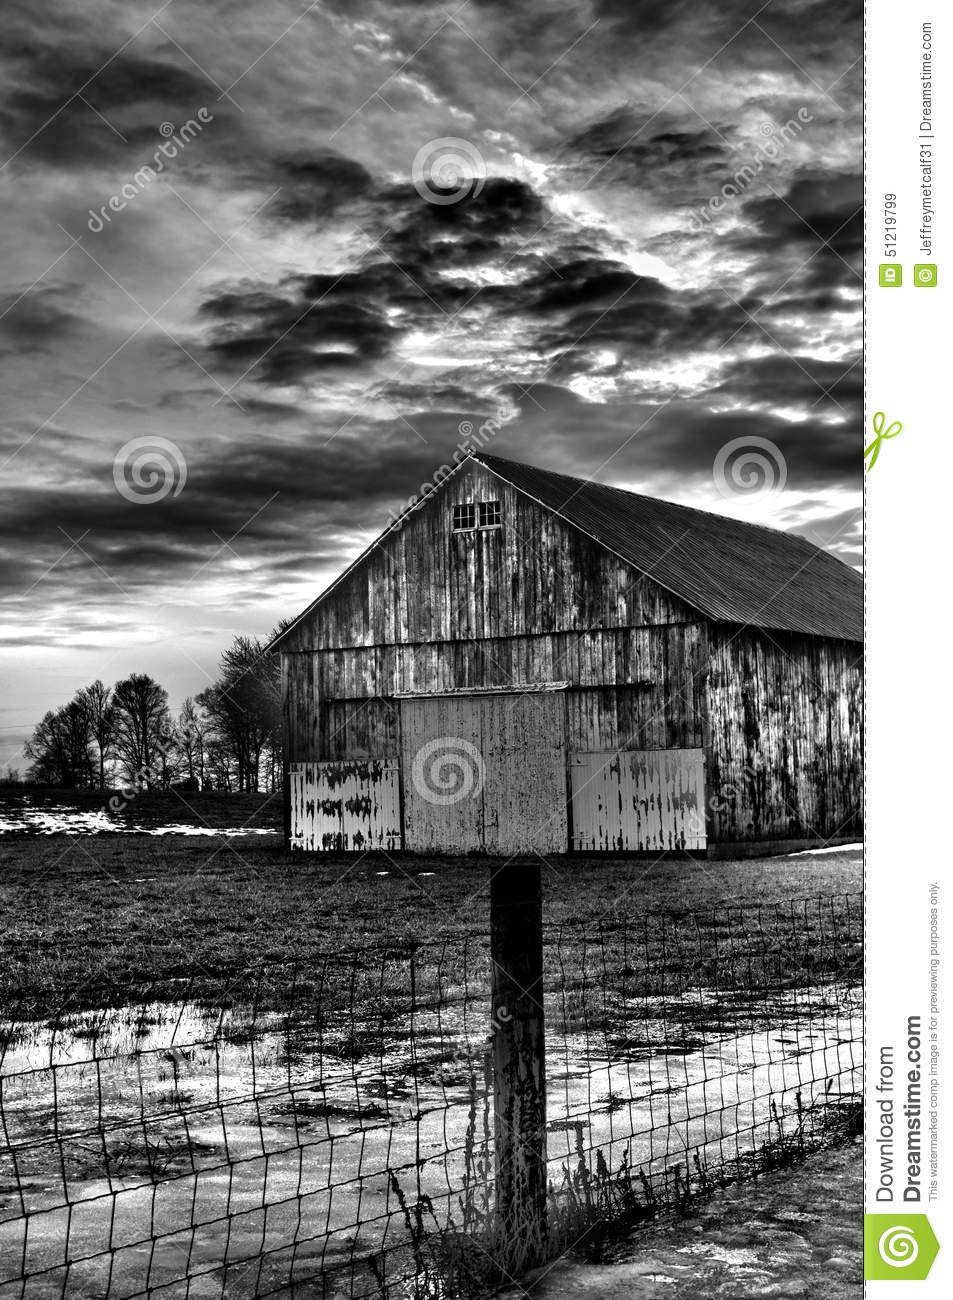 Barn in black and white with cloudy background stock image image download barn in black and white with cloudy background stock image image of having altavistaventures Images